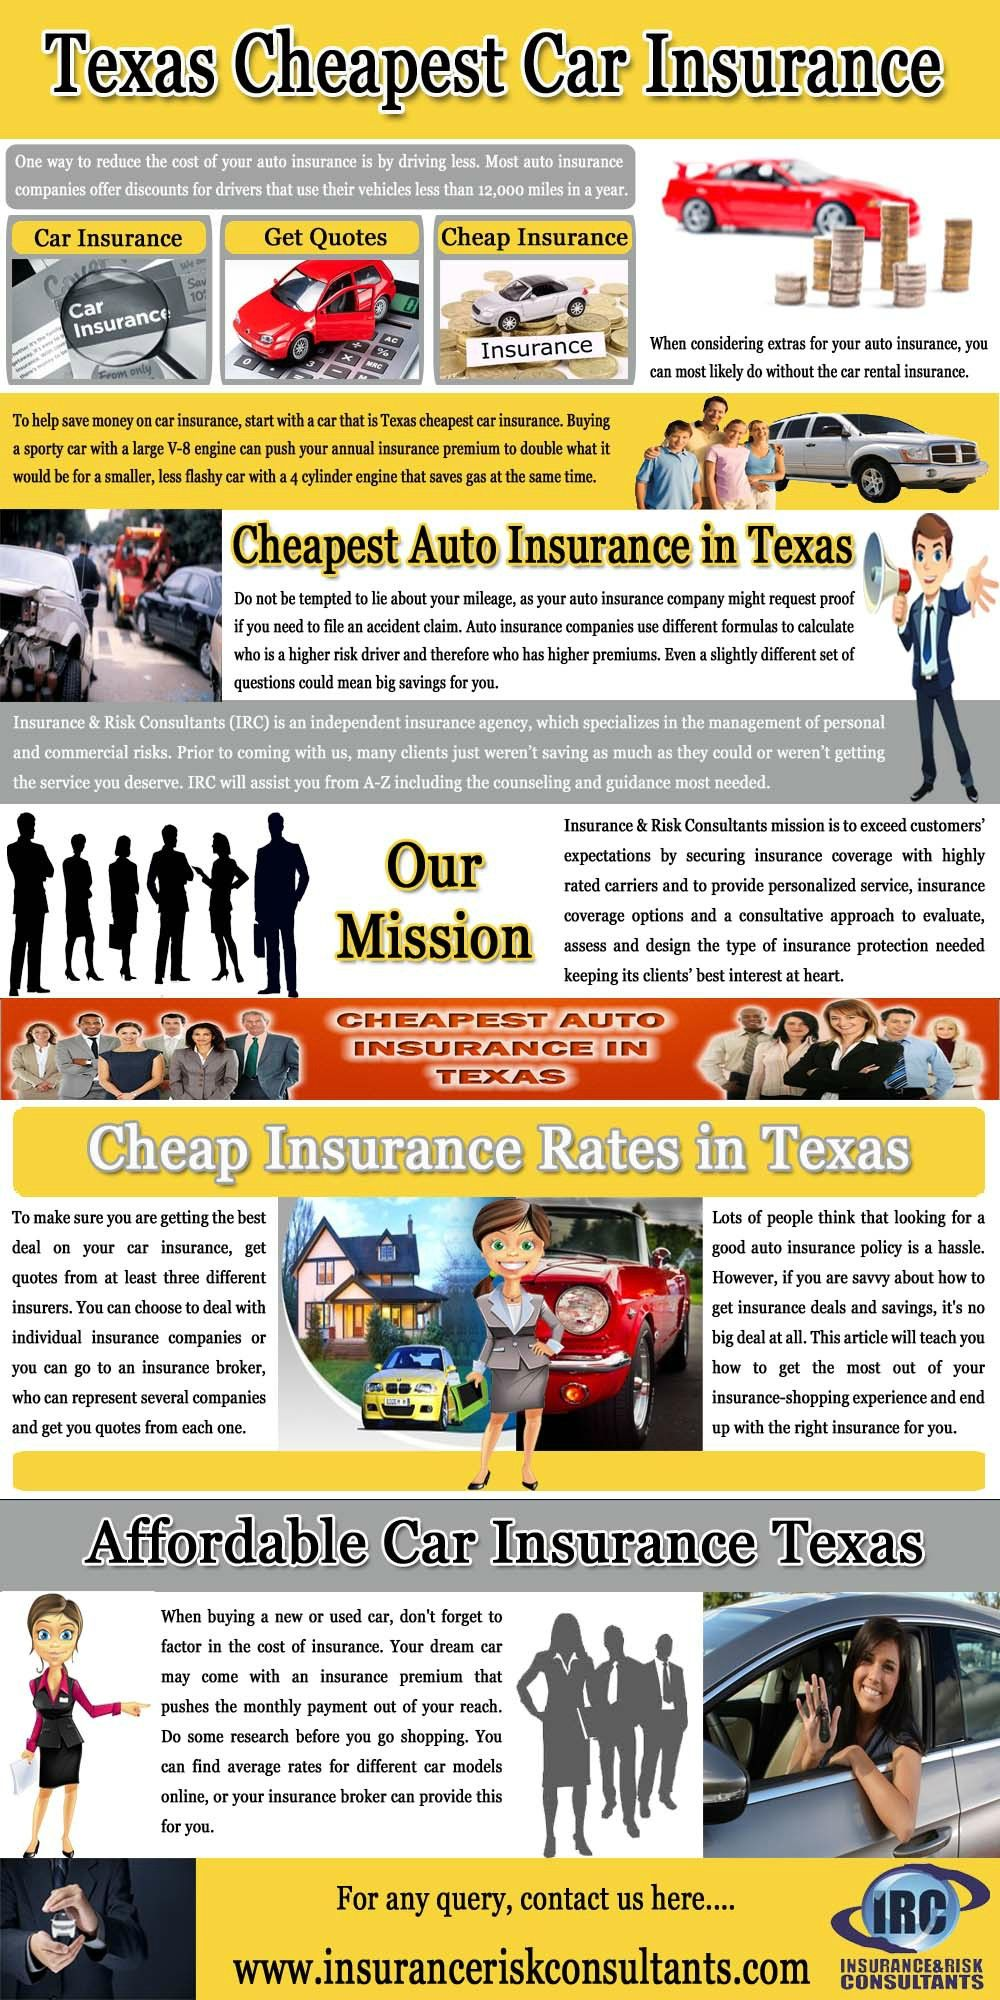 Affordable Car Insurance Texas Cheap Car Insurance Car